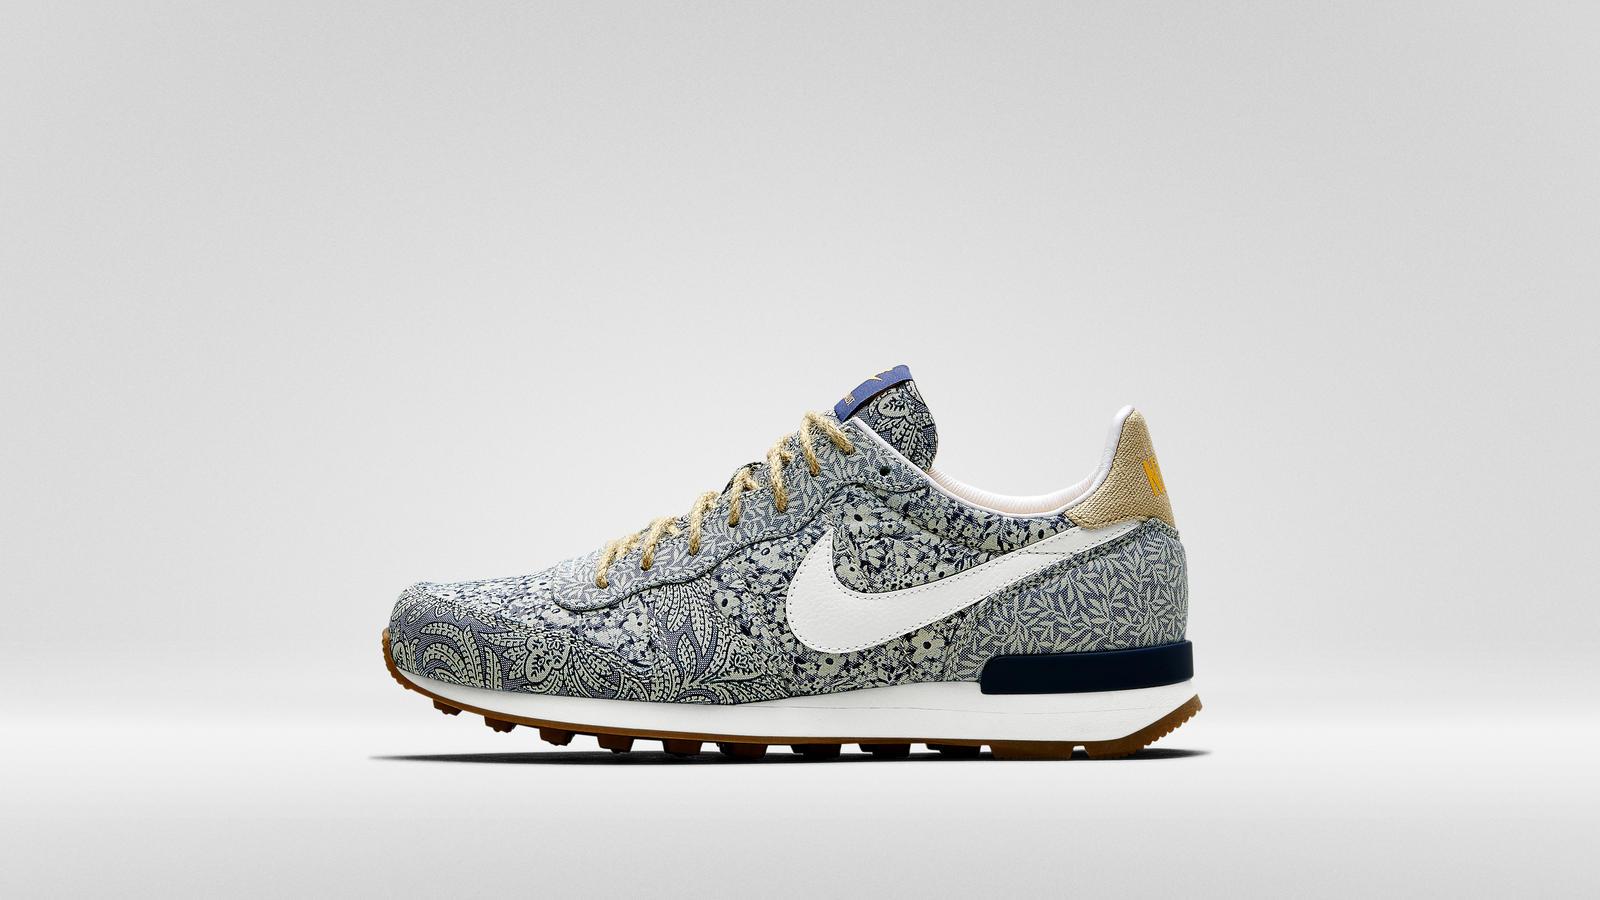 quality design 7640b 436e7 ... sweden nike refreshes its icons for women with the launch of the newest  collaboration with liberty